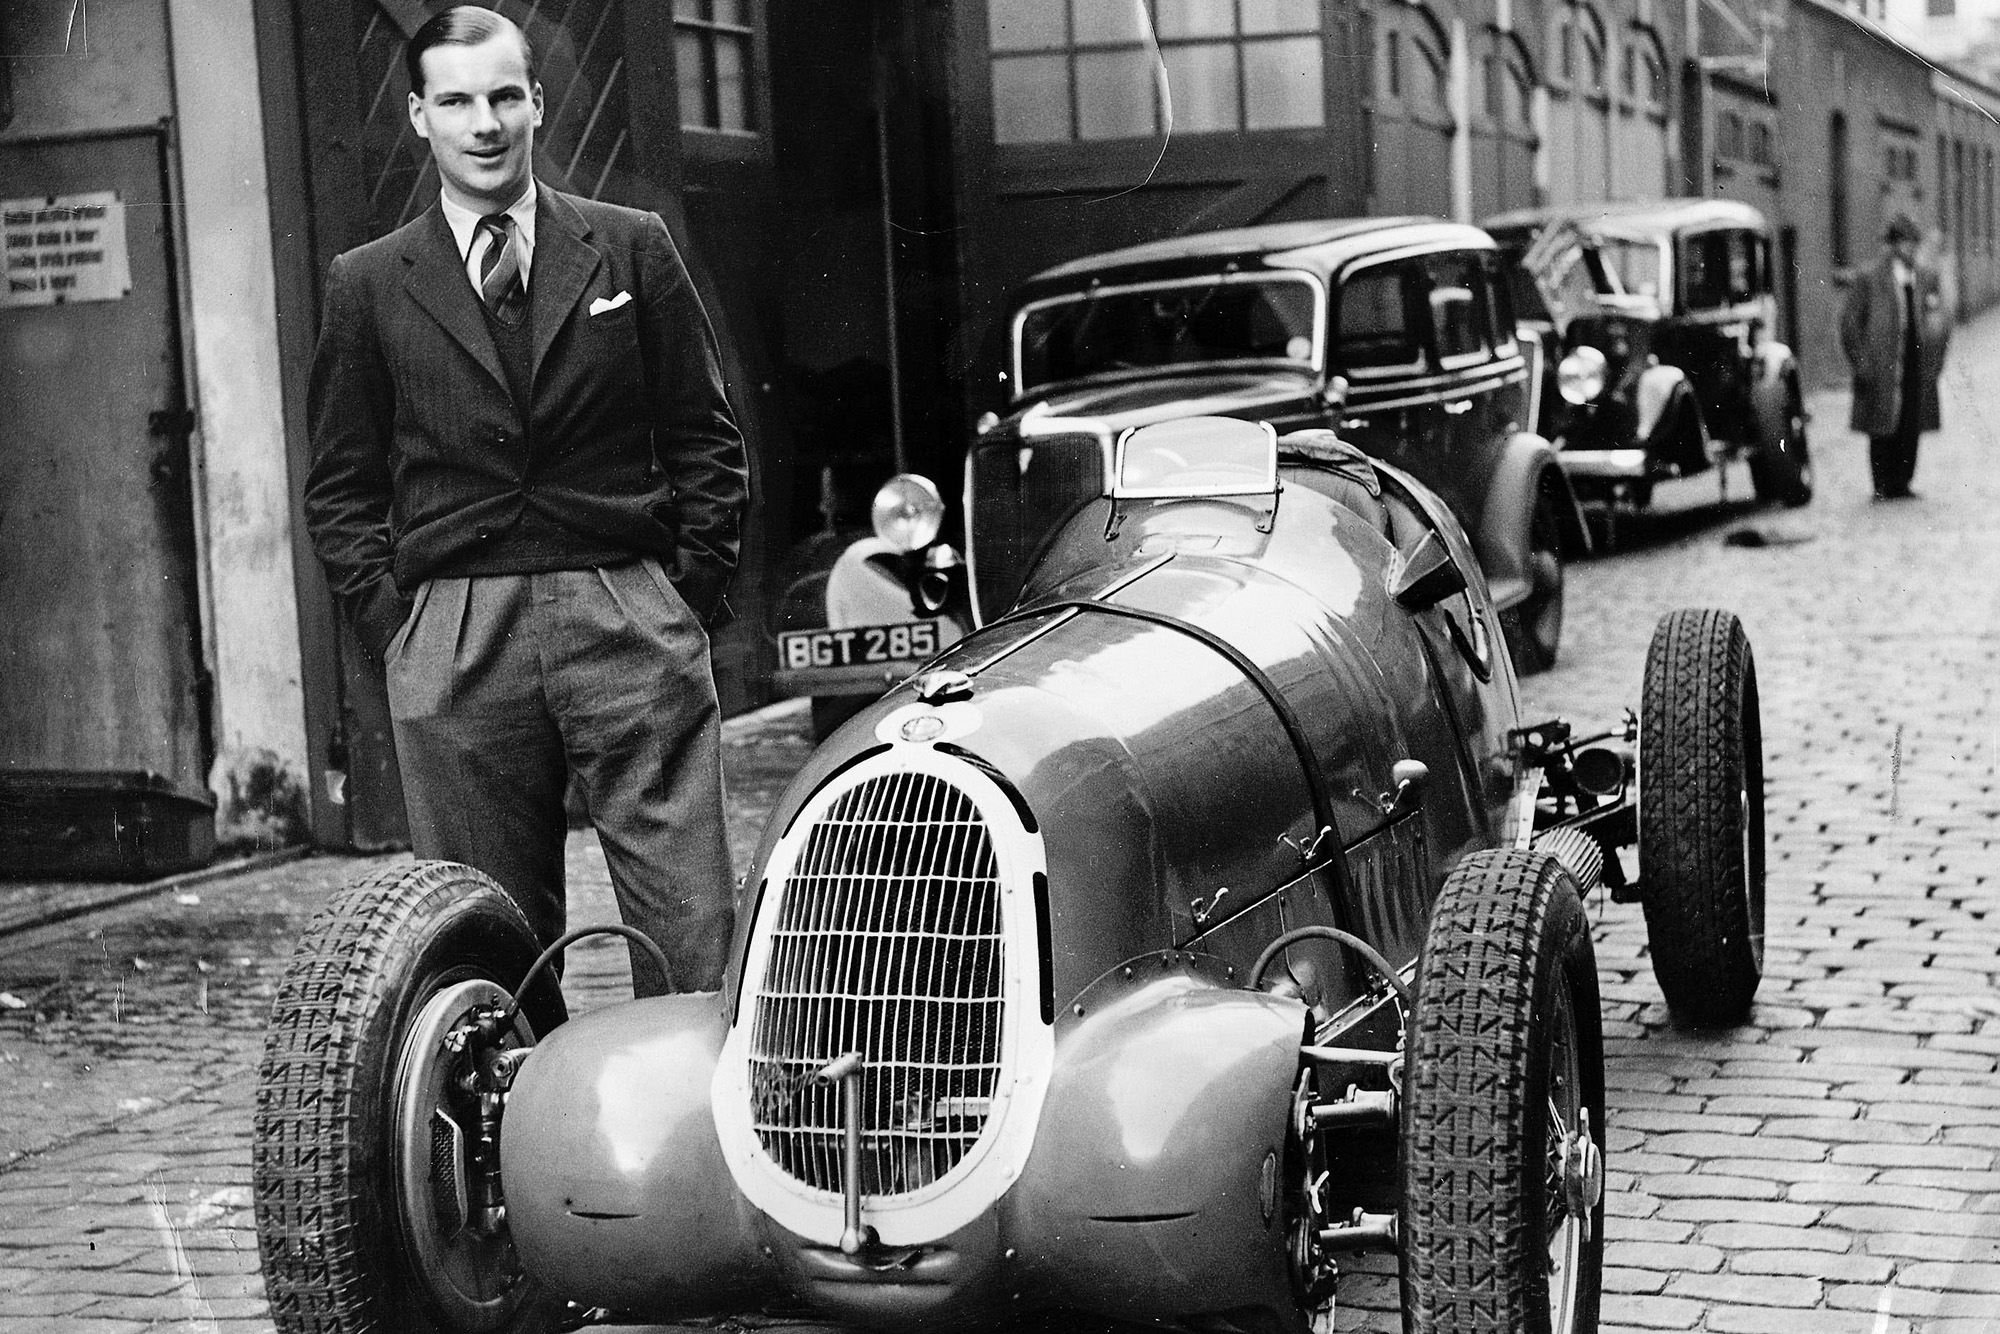 Dick Seaman with the winning Alfa Romeo Tipo-C 8C-35